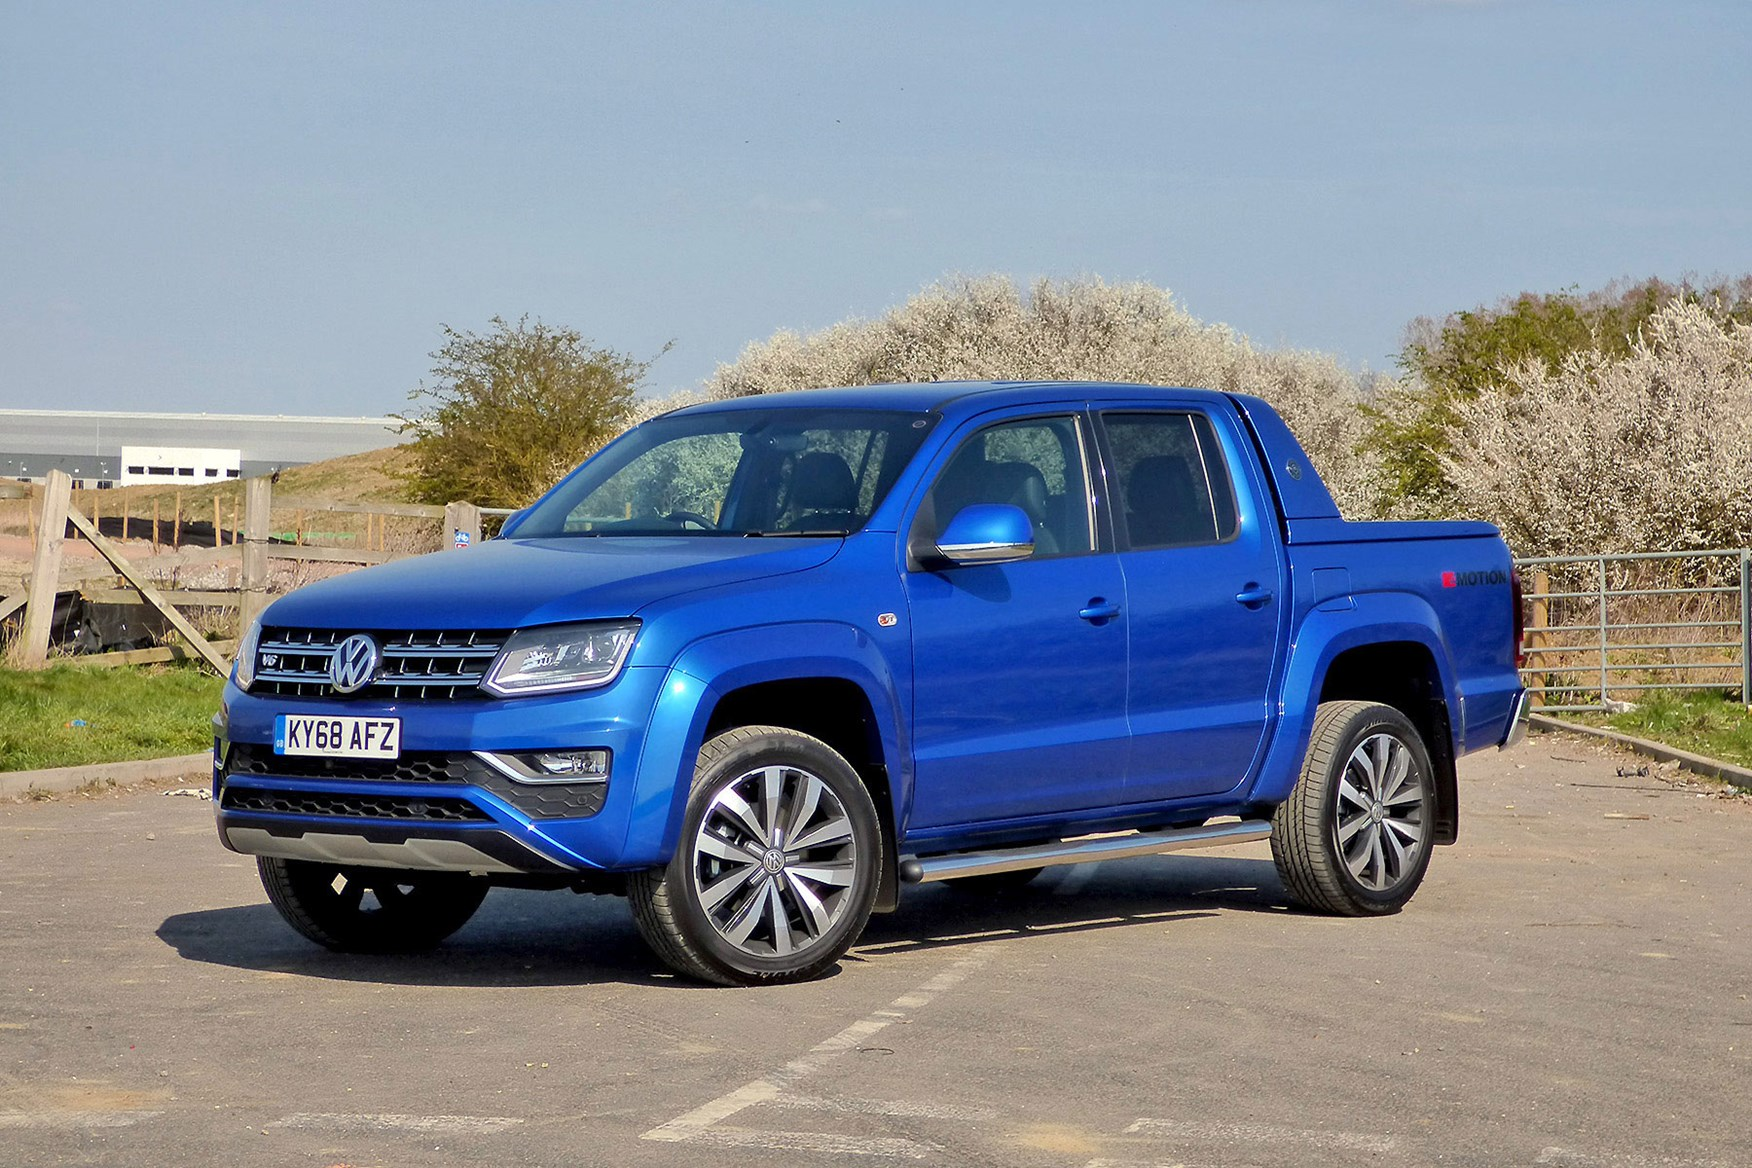 VW Amarok V6 Aventura 258hp review - front view, blue